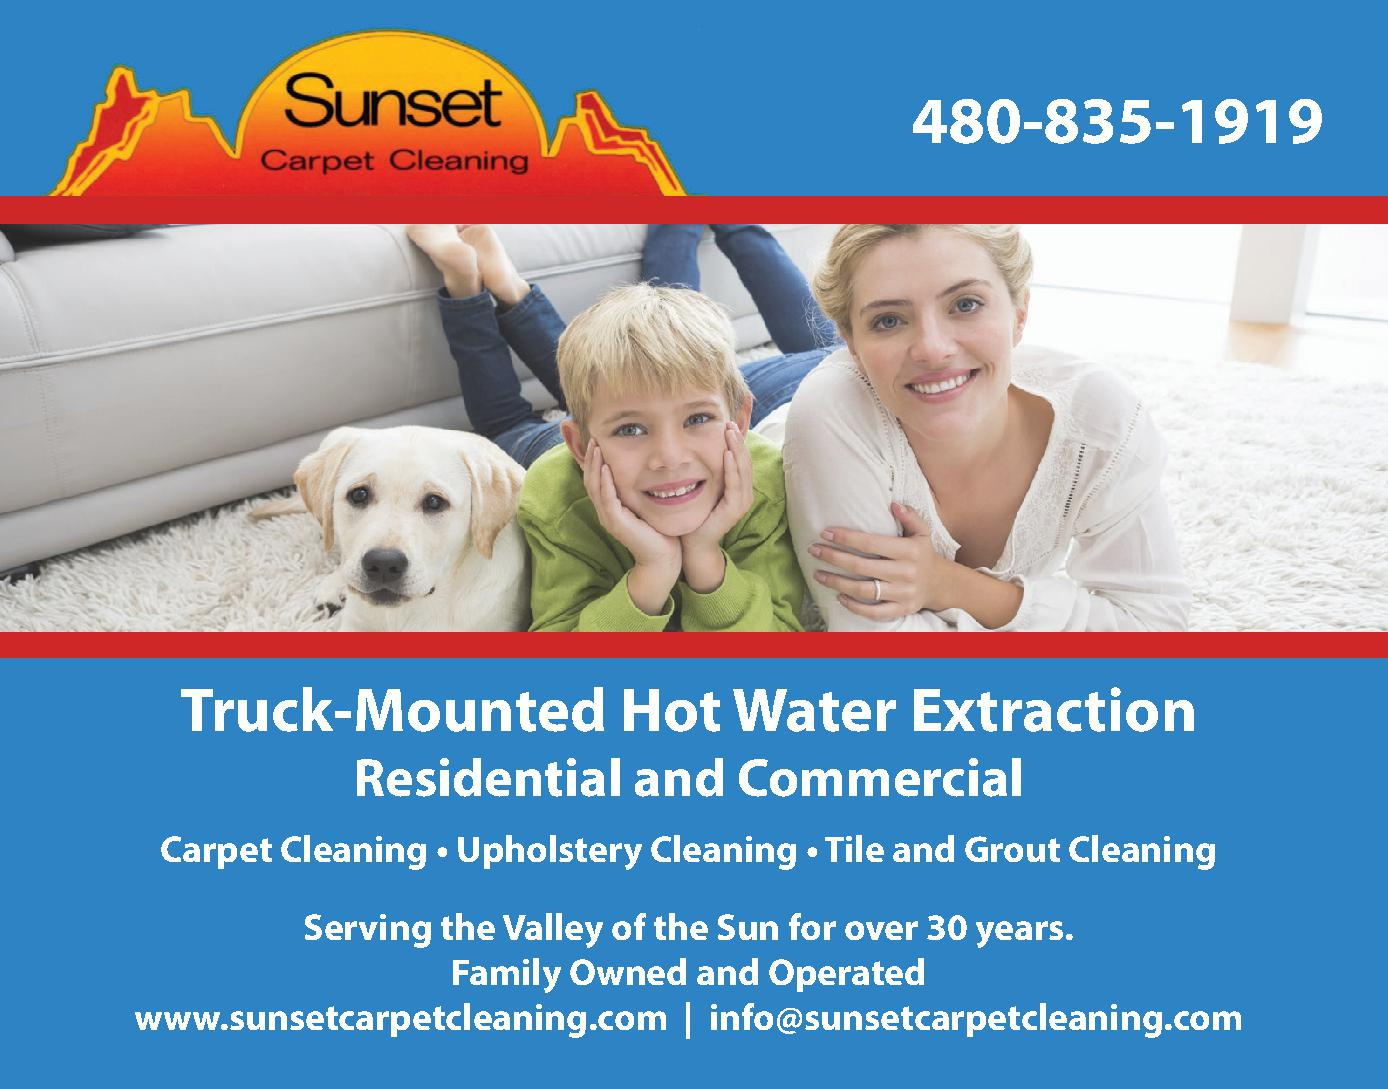 Sunset Carpet Cleaning